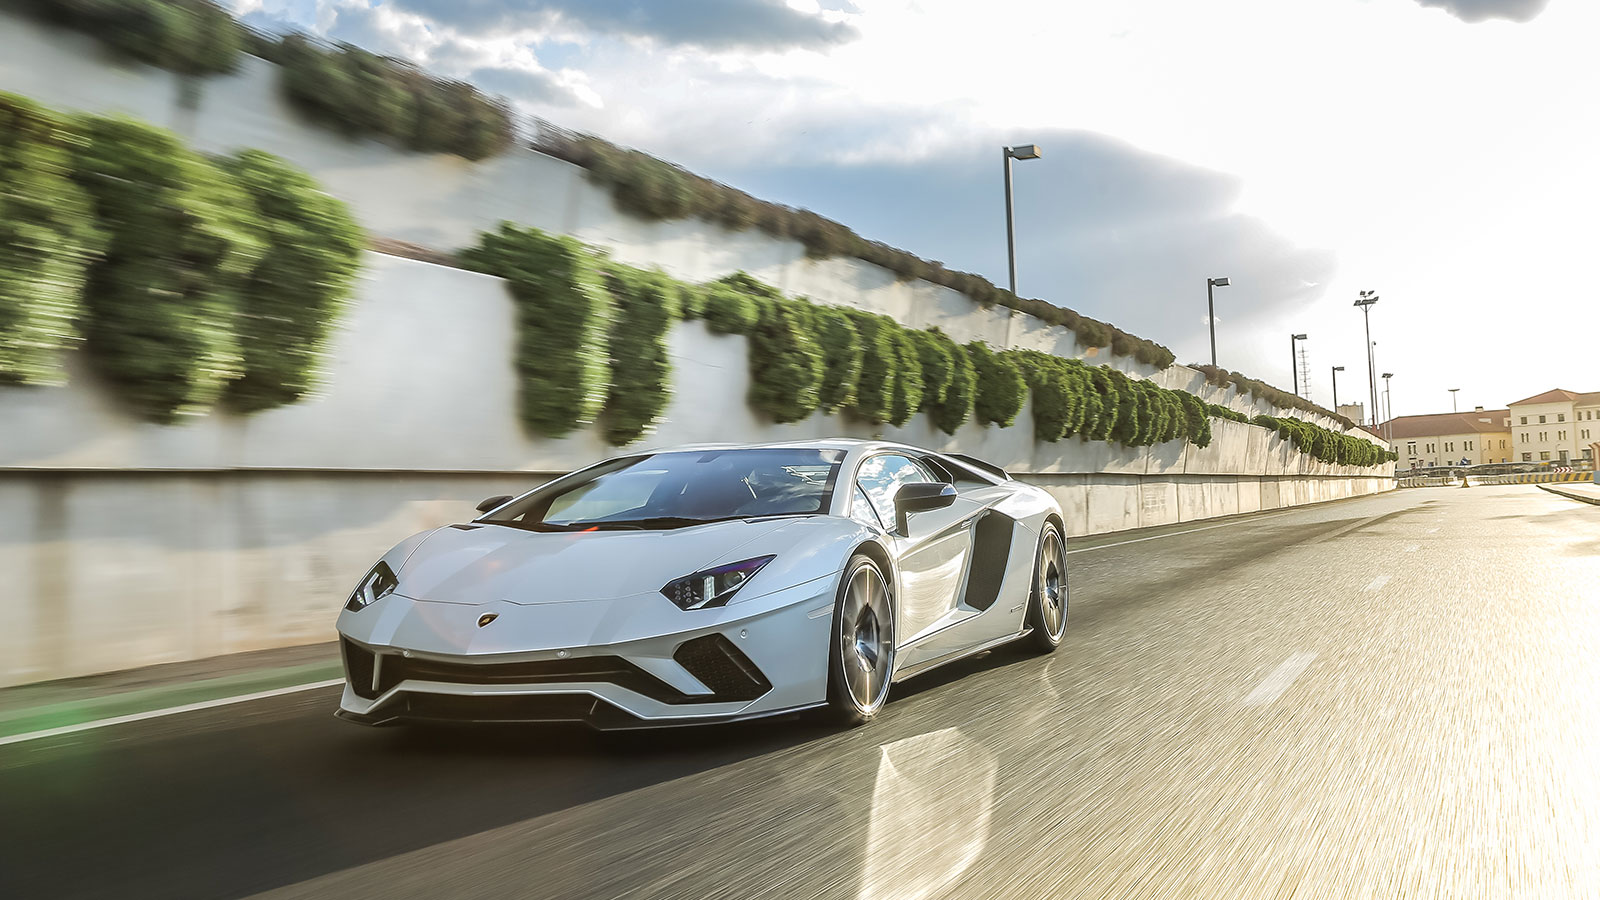 Lamborghini Aventador S Coupe - The Icon Reborn image 16